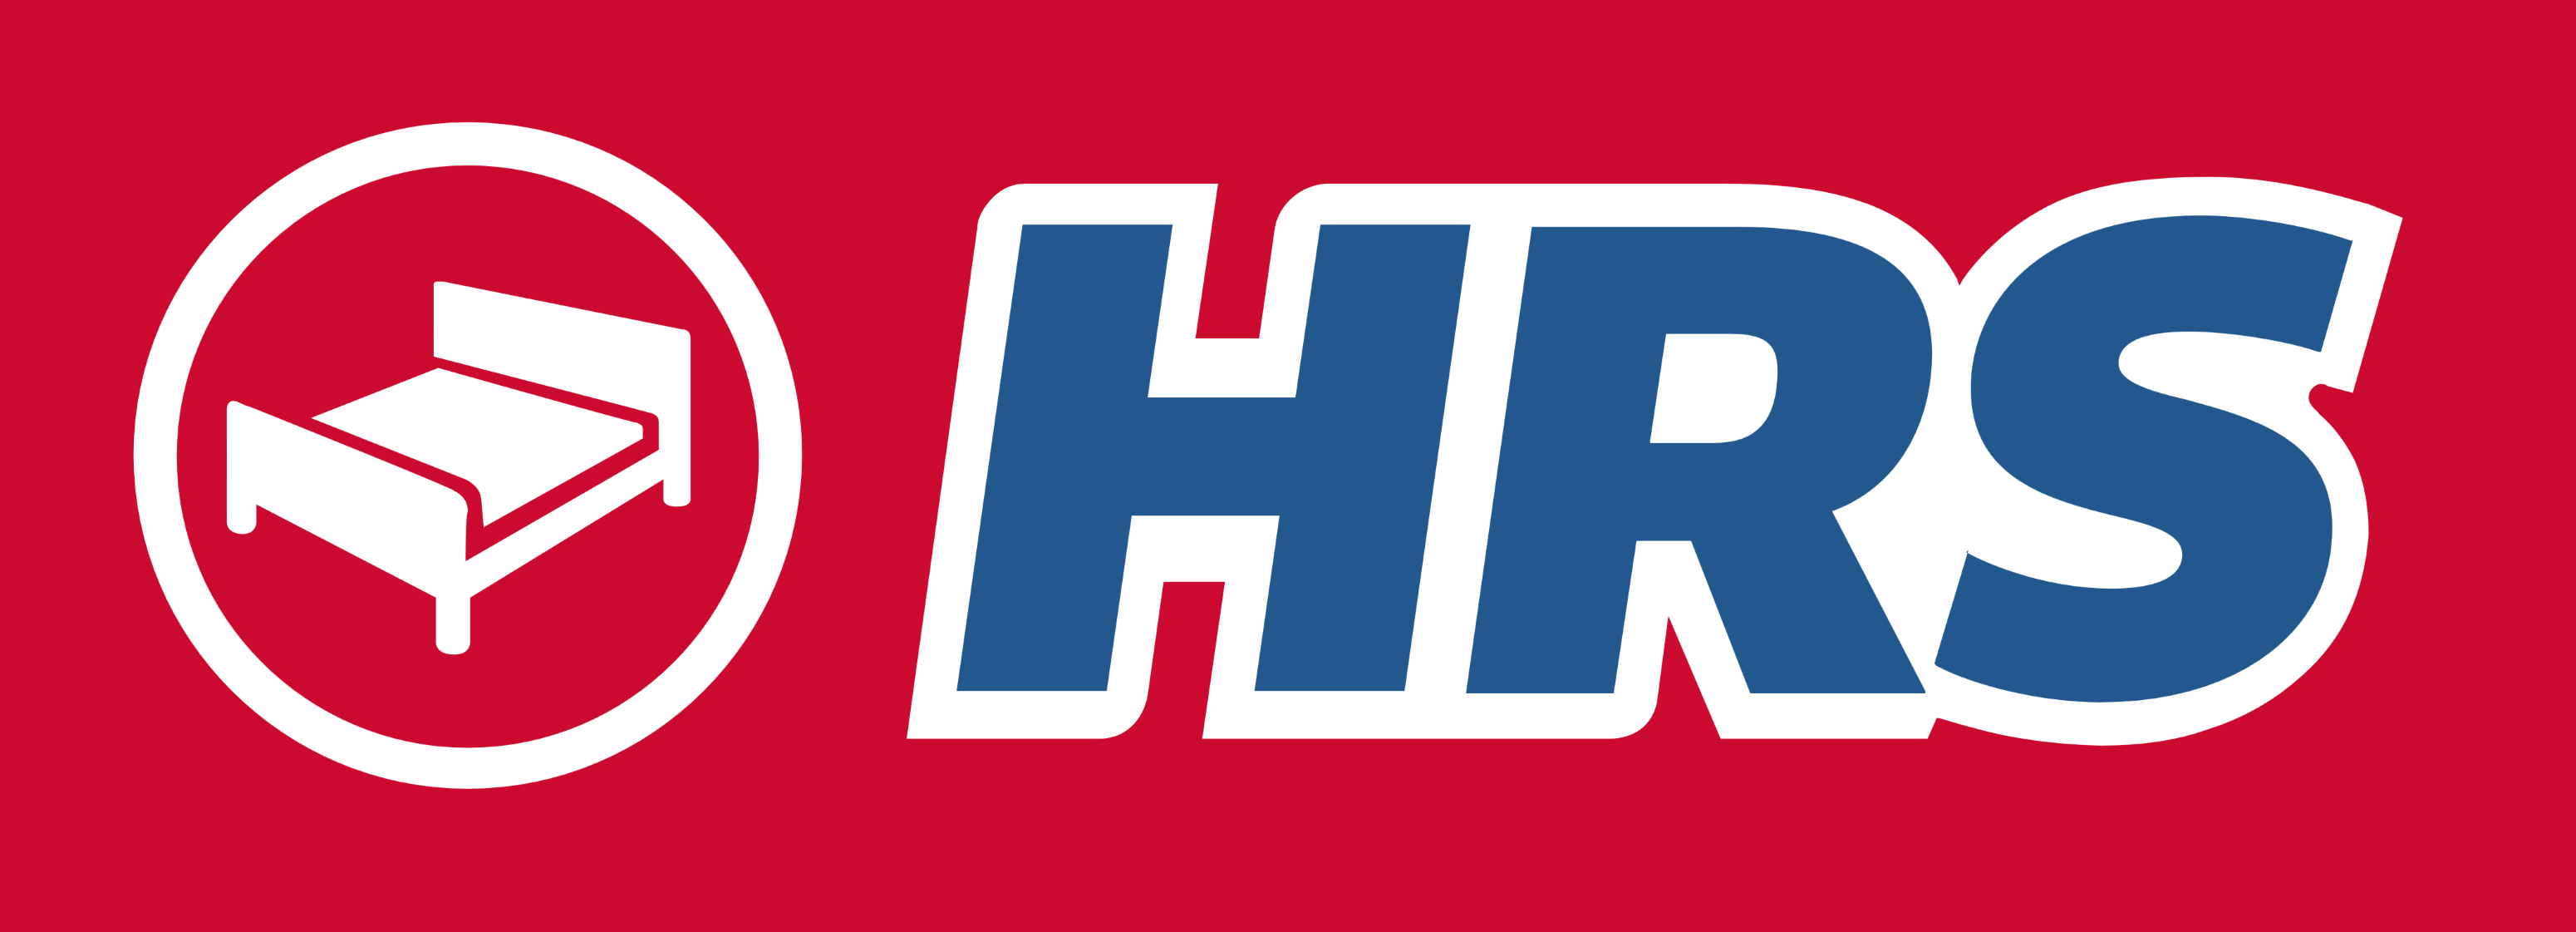 Hrs Logo, Logotype - Hrs, Transparent background PNG HD thumbnail